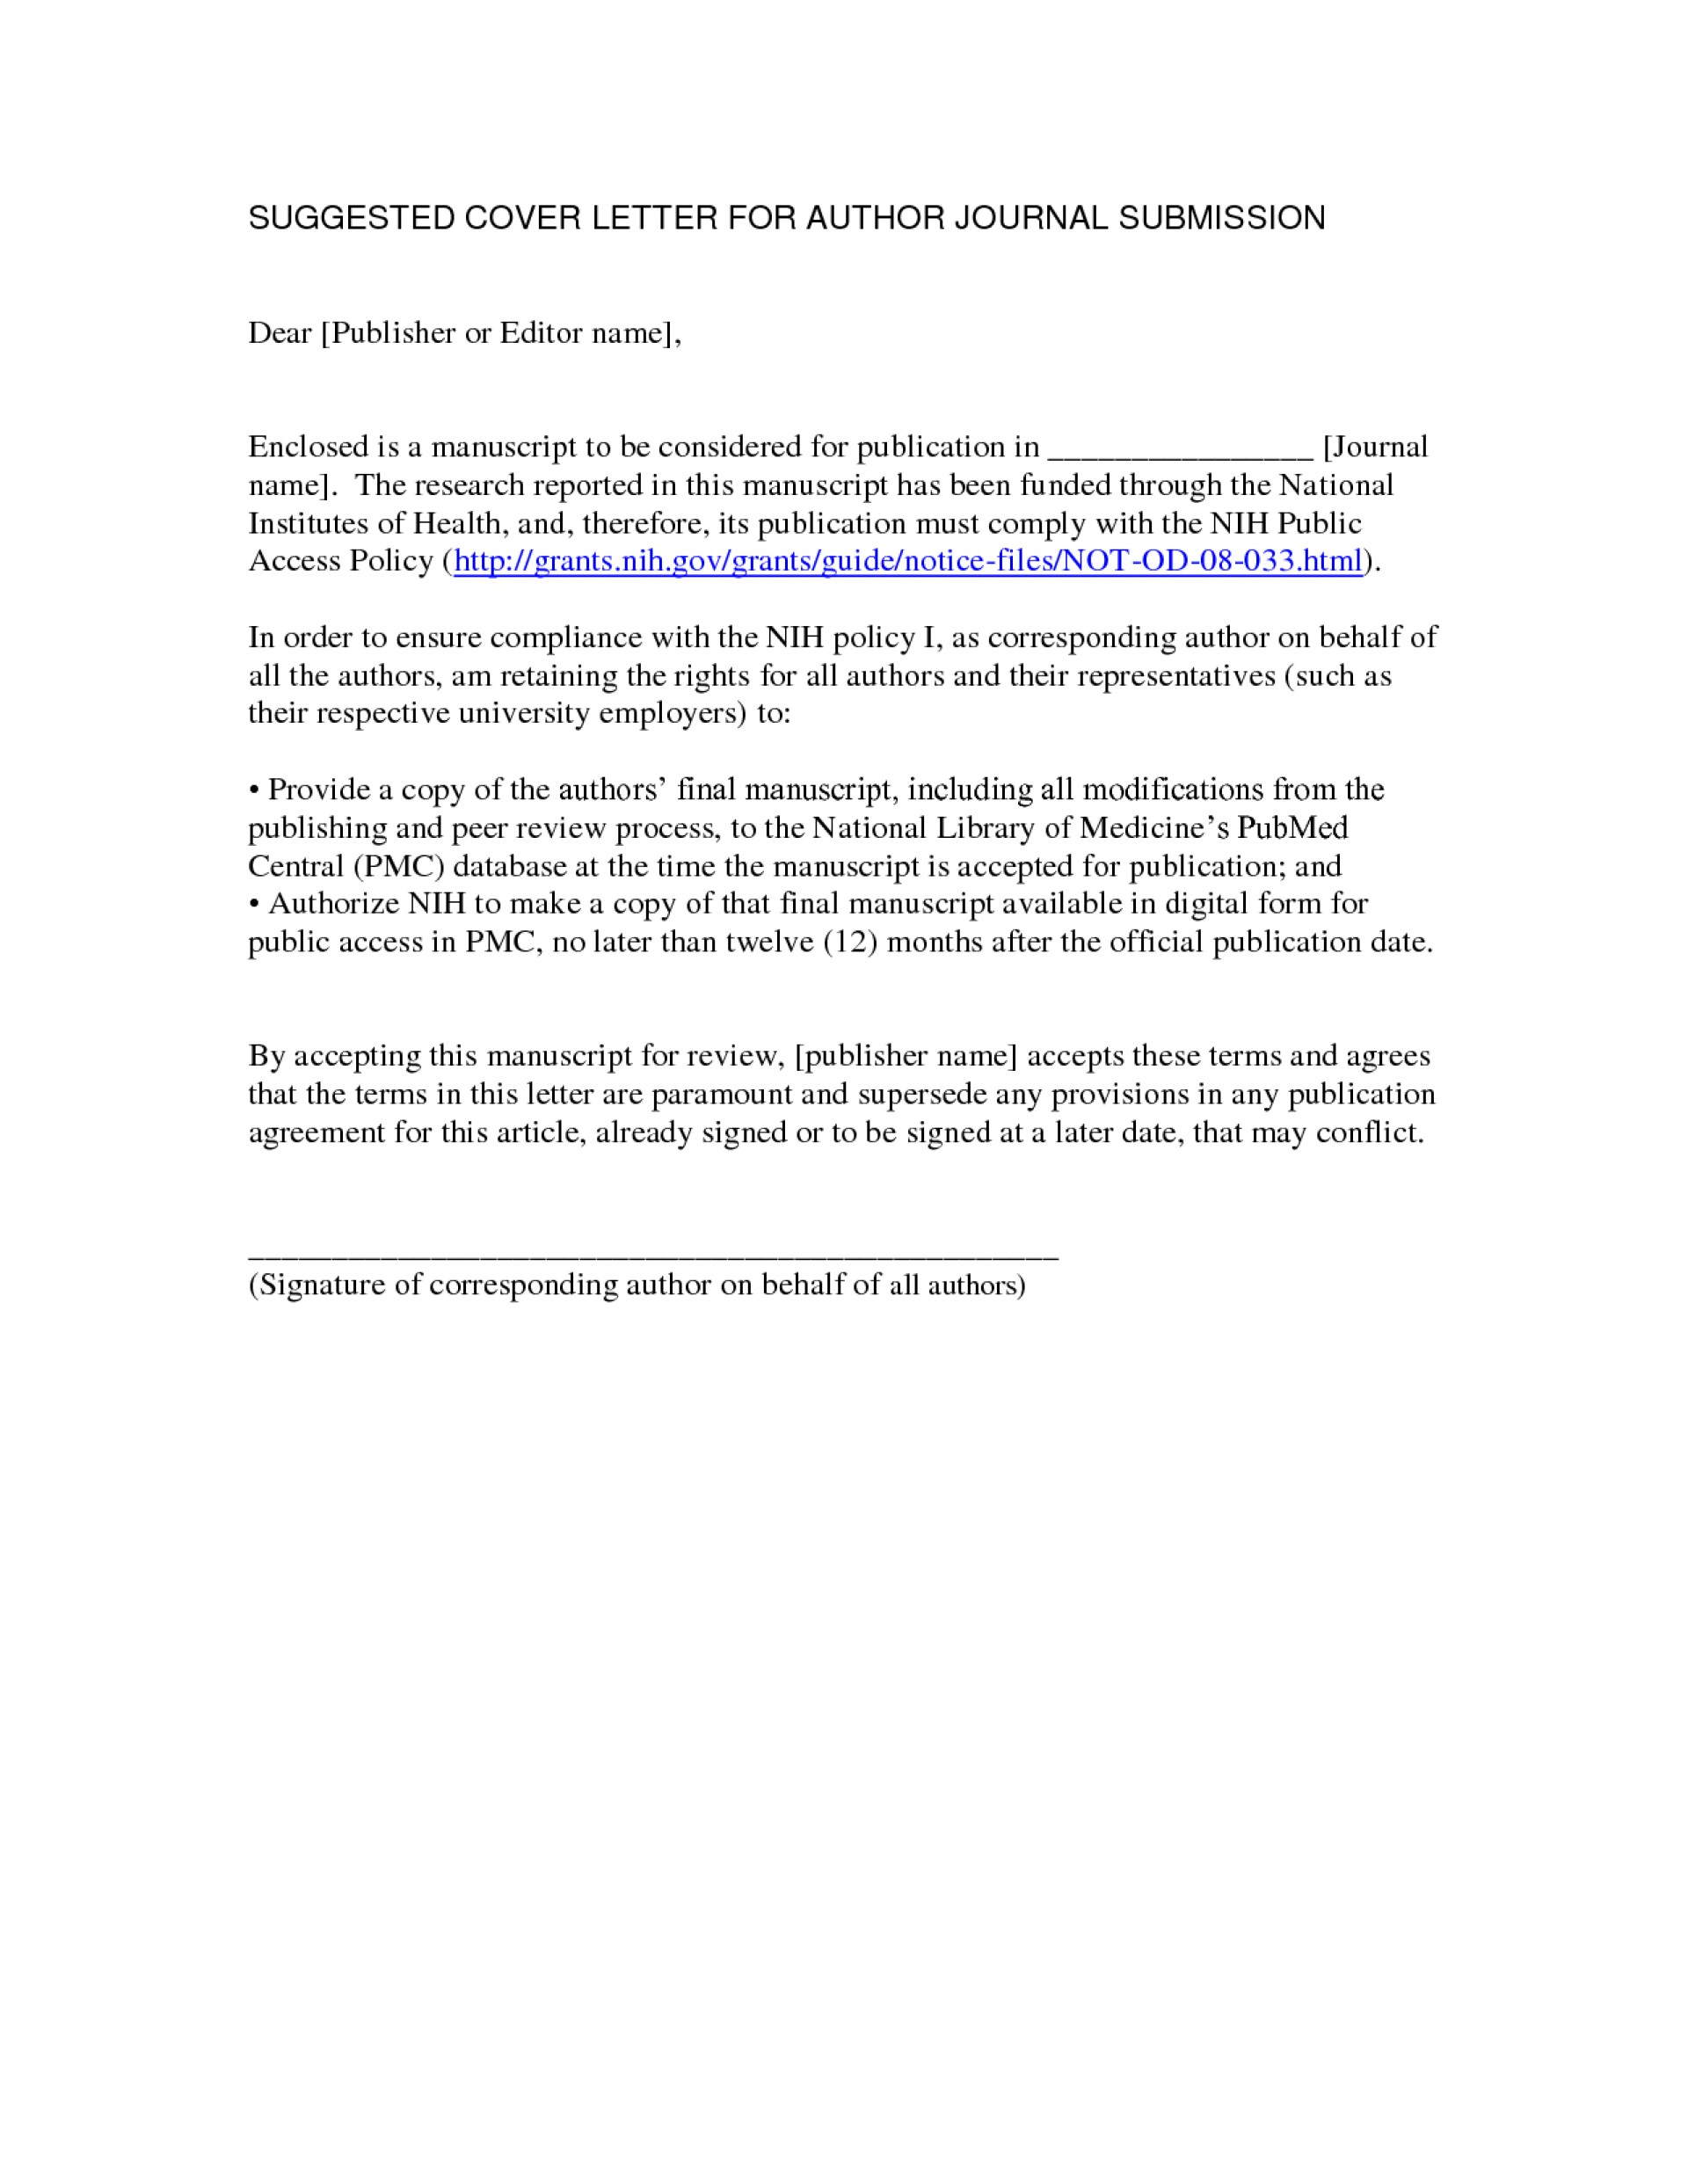 022 Research Paper Editor Cover Letters For Writing Subimissions Popular Letter Manuscript Breathtaking Free Editing Software On Text 1920